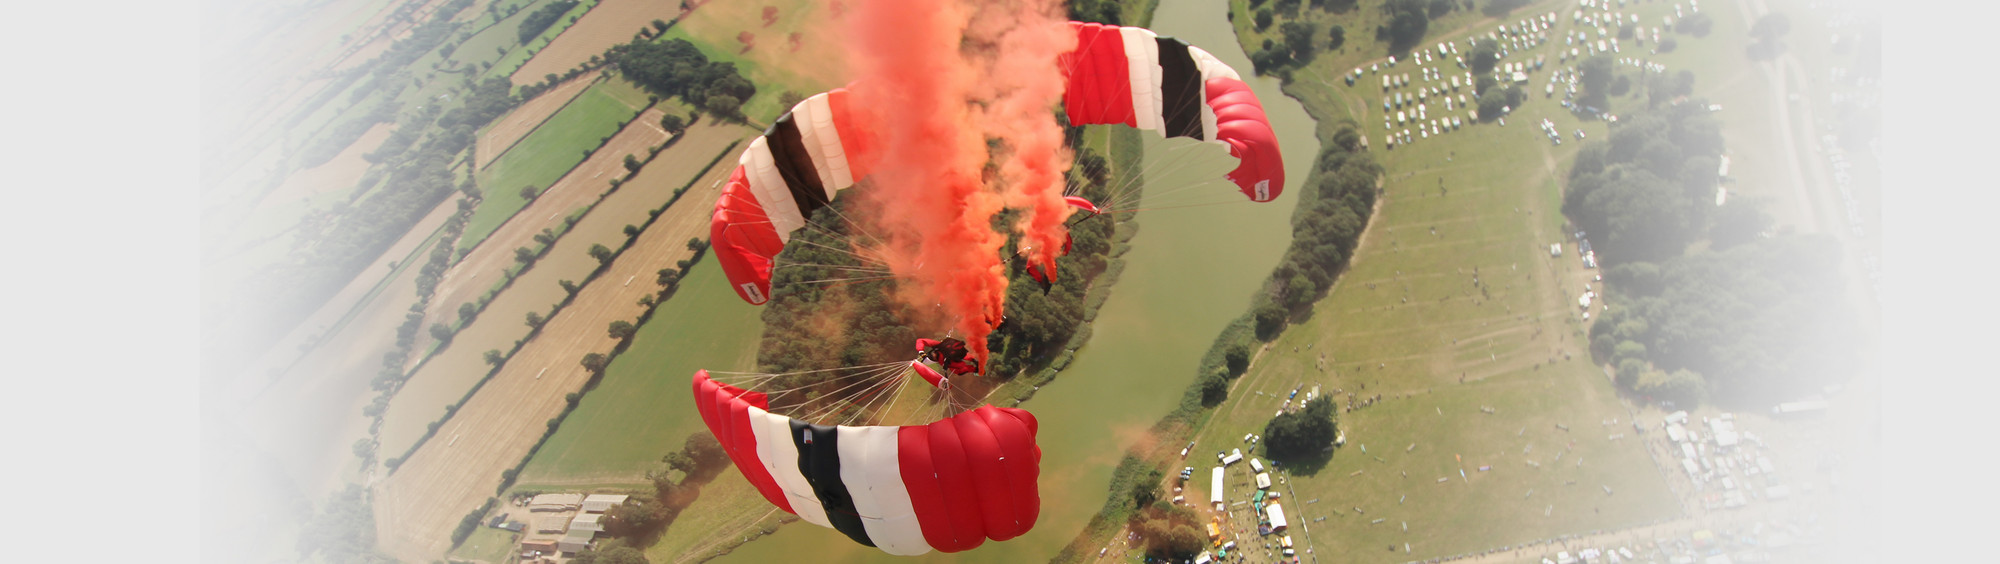 Gentex Corporation Partners with The Red Devils to Promote Parachutist Safety